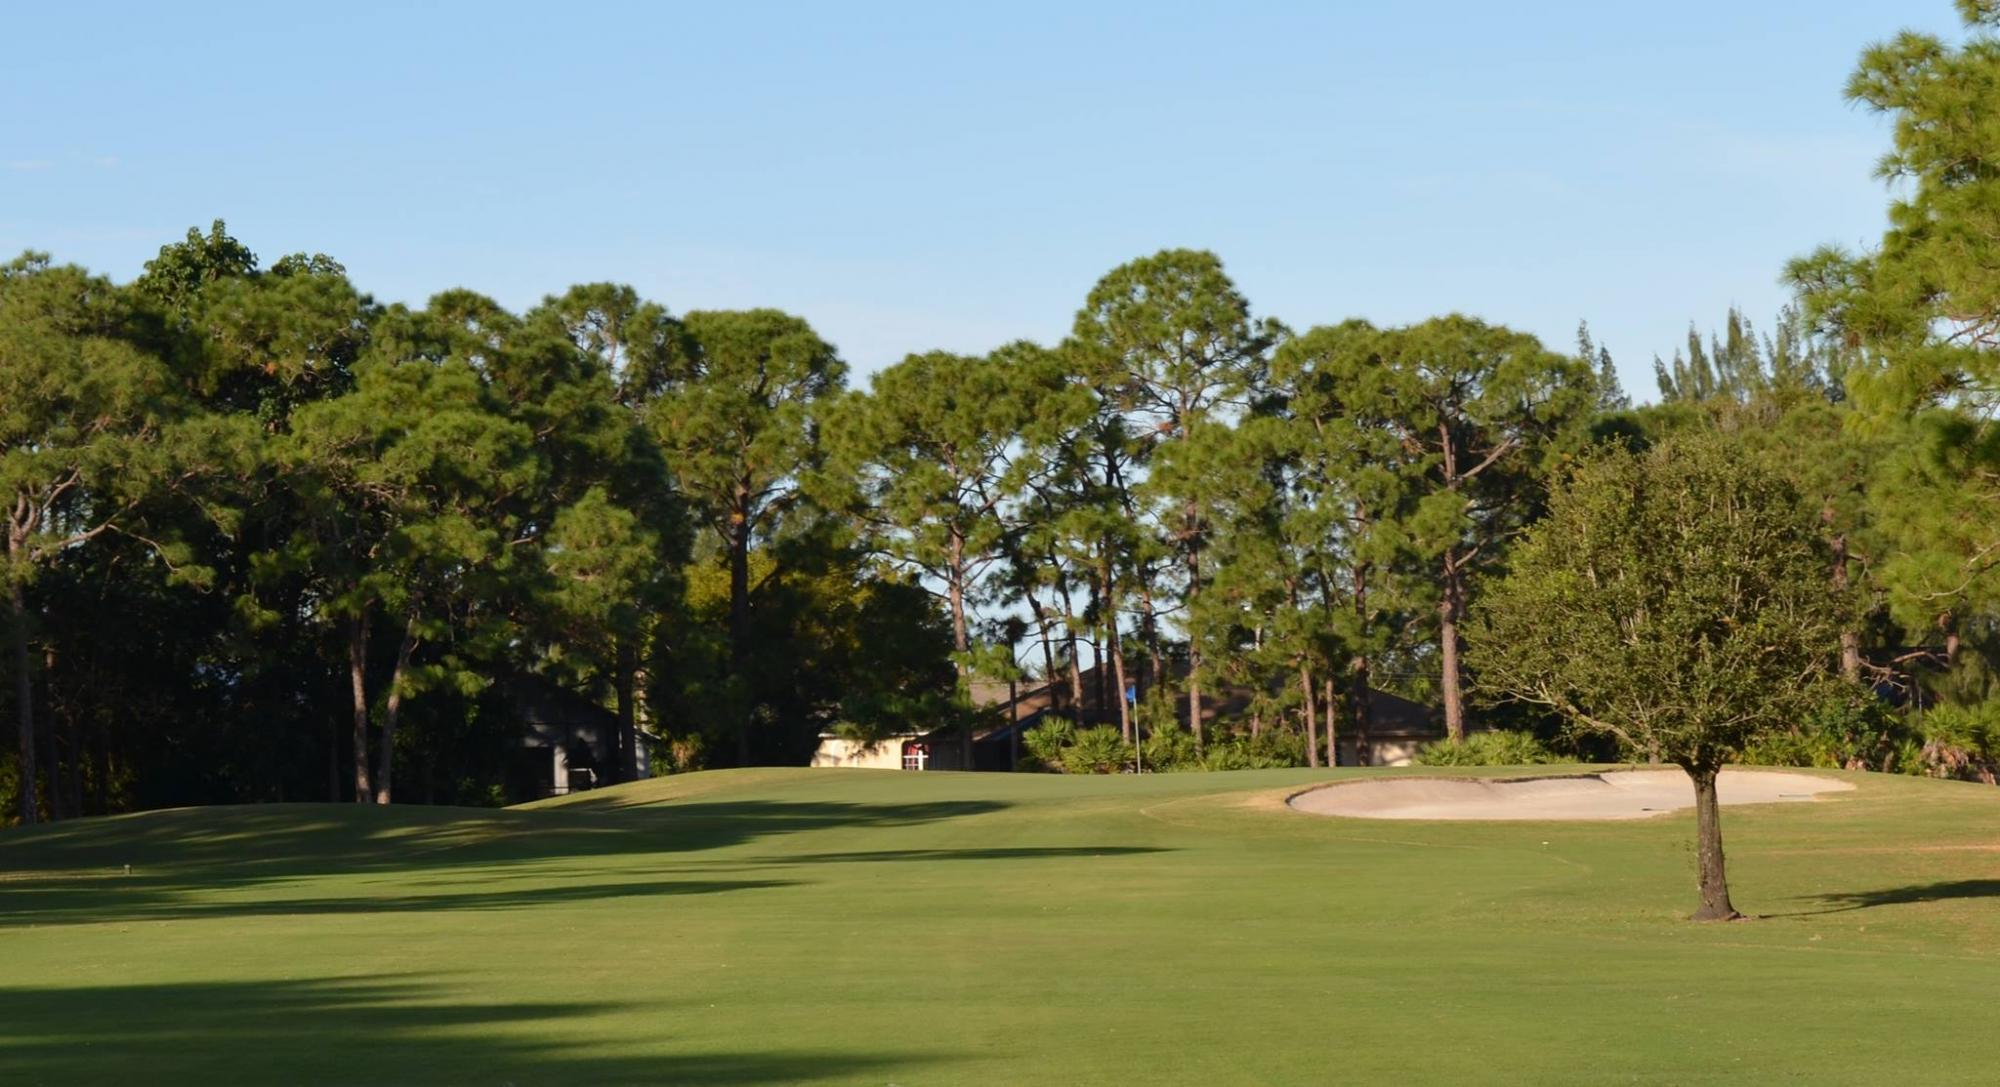 View Palmetto Golf Club's impressive golf course situated in dazzling South Carolina.